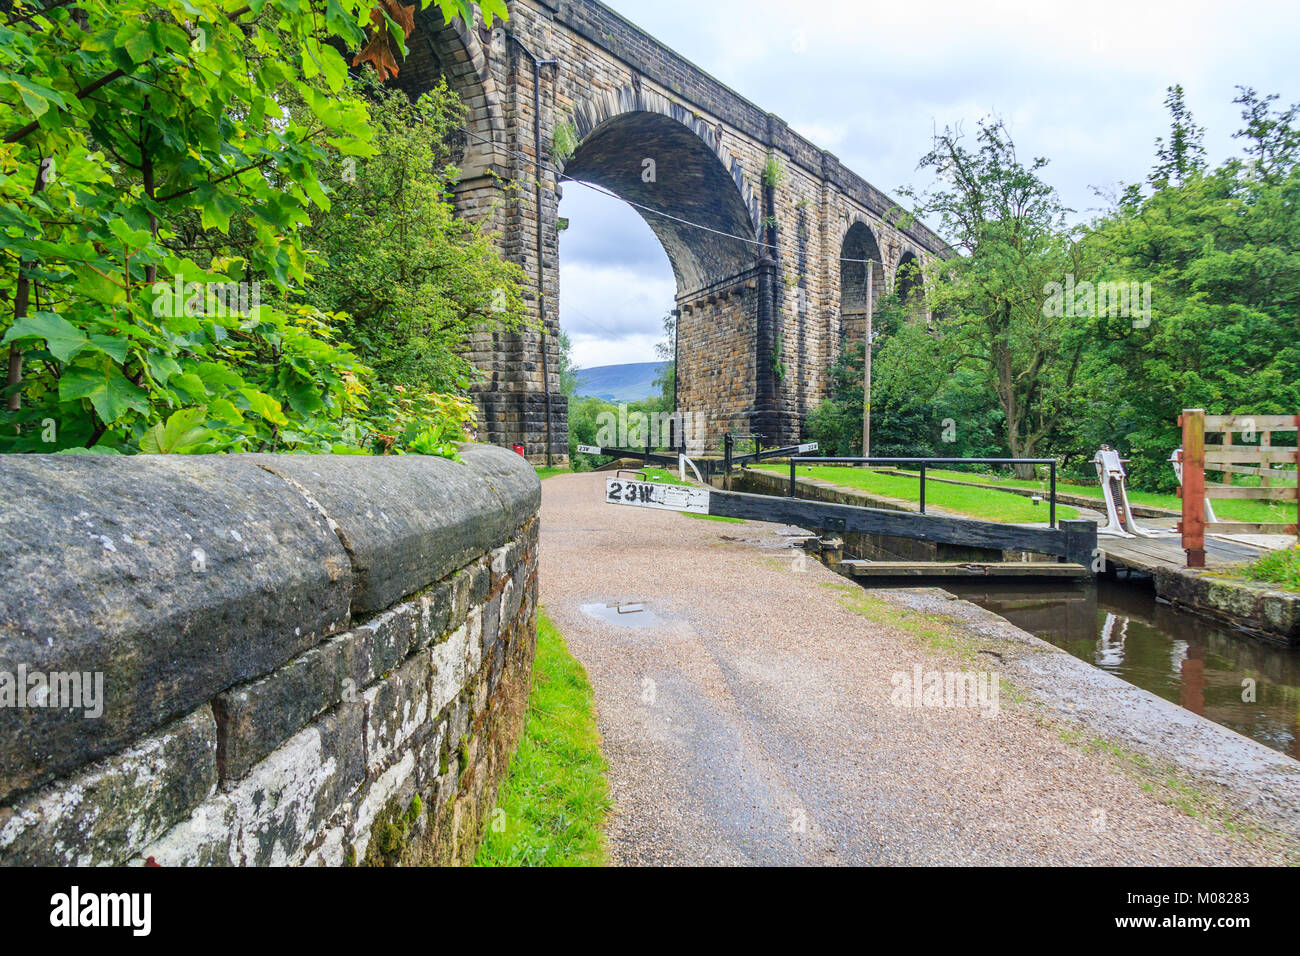 Lock, towpath, viaduct over the Huddersfield Narrow Canal, Uppermill, Oldham Lancashire, England, United Kingdom, - Stock Image